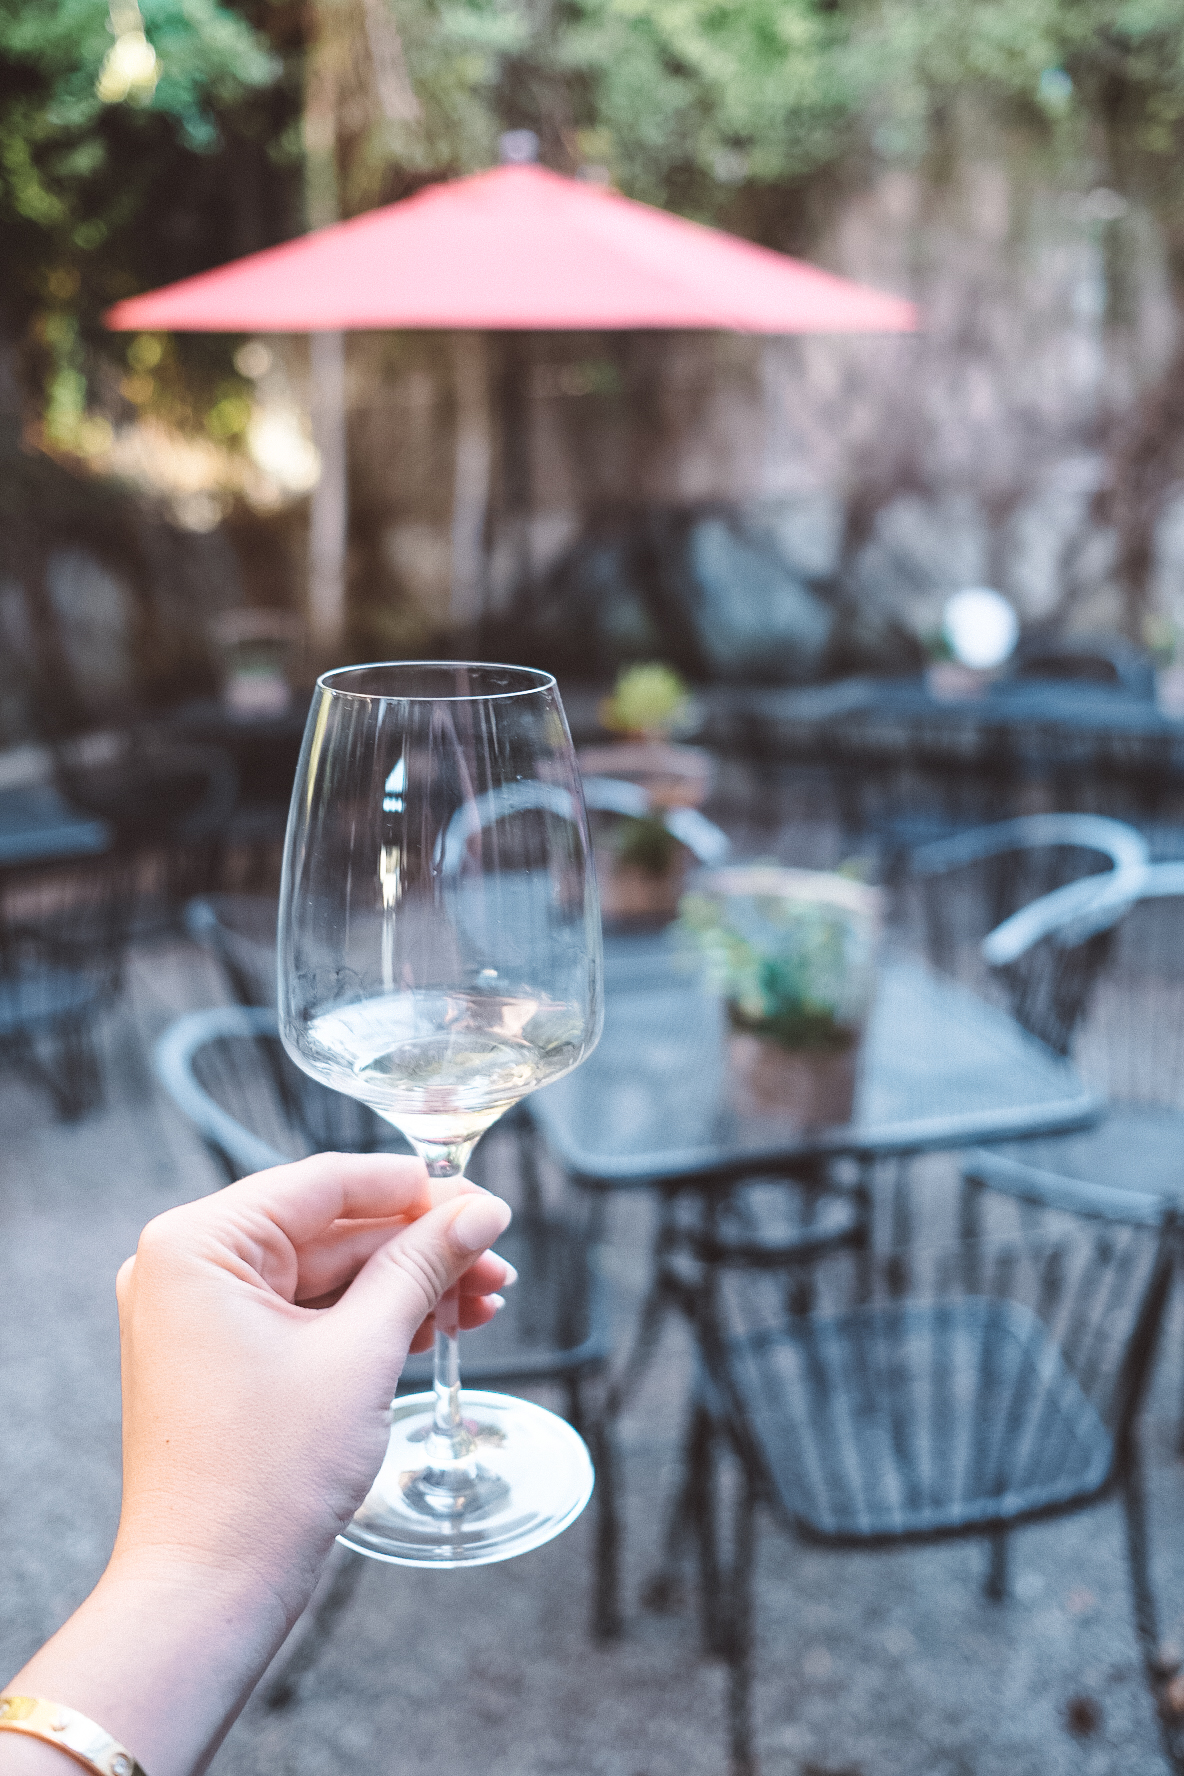 sipping white wine on the outdoor patio at Pech Merle Winery in Geyserville, California